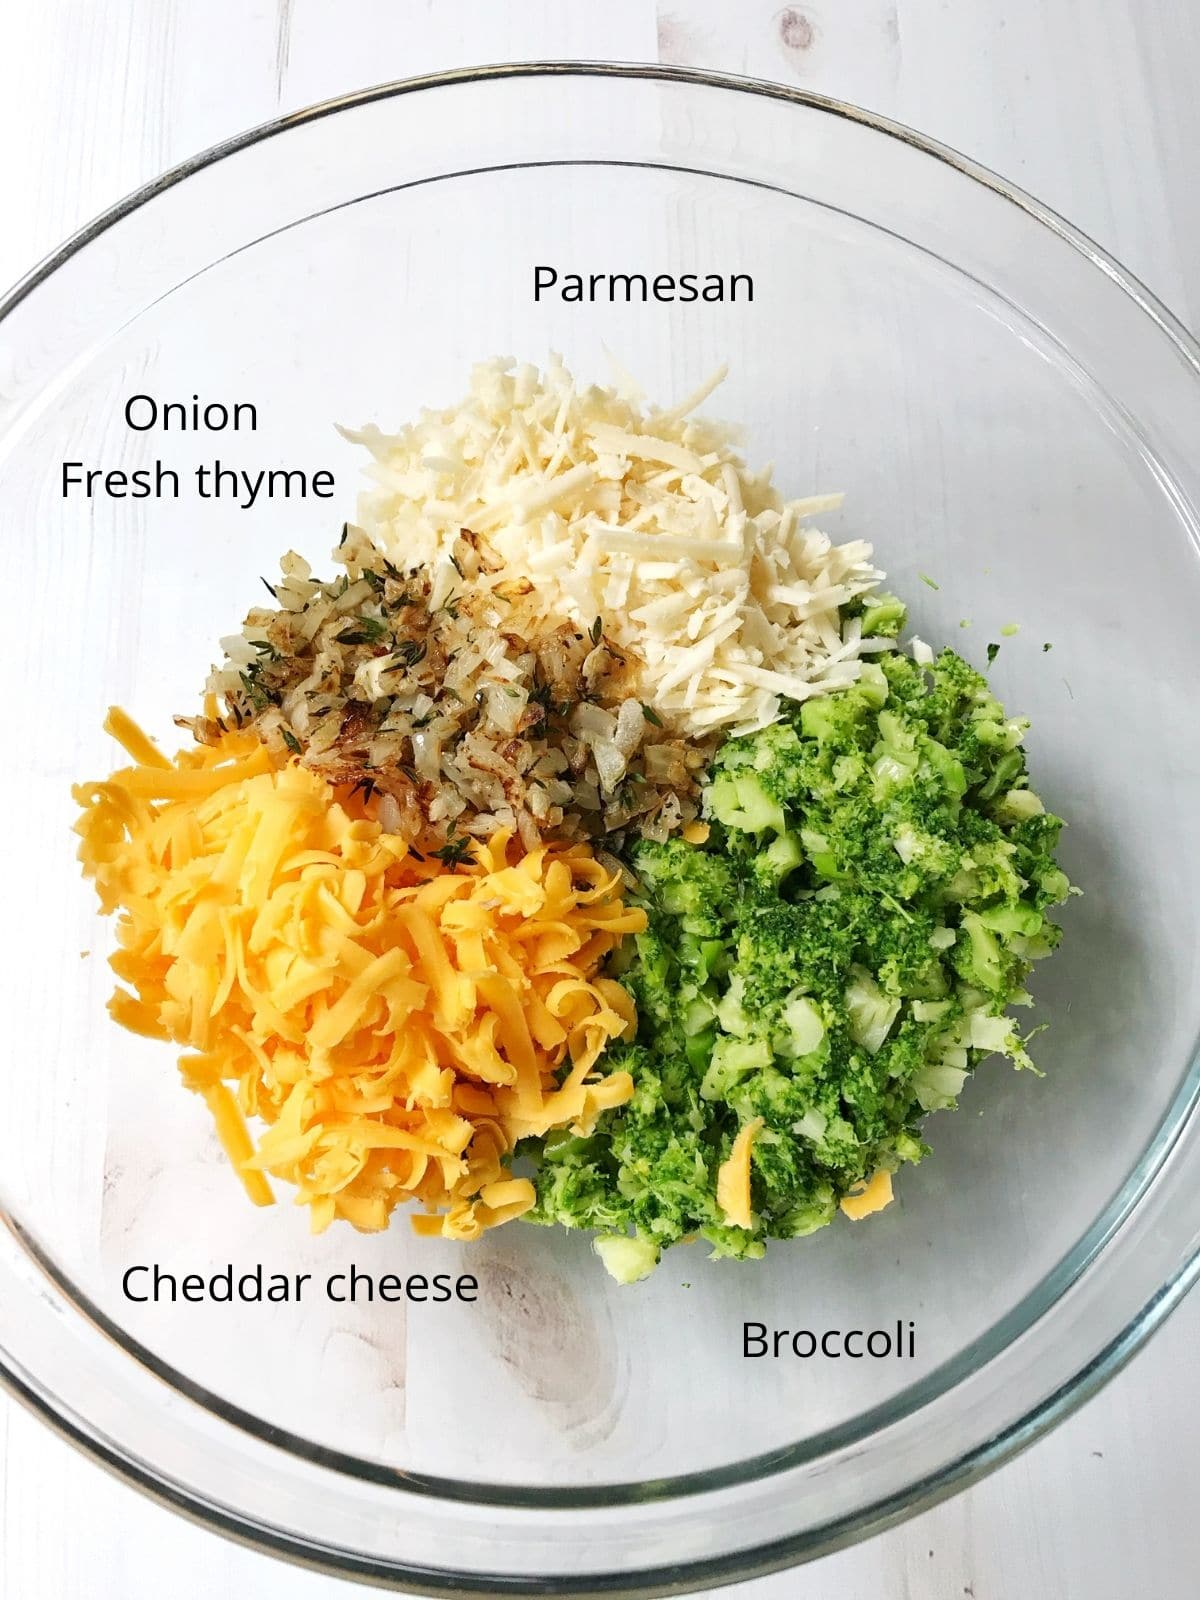 bowl of broccoli tart ingredients - broccoli, cheddar, onions, thyme, parmesan